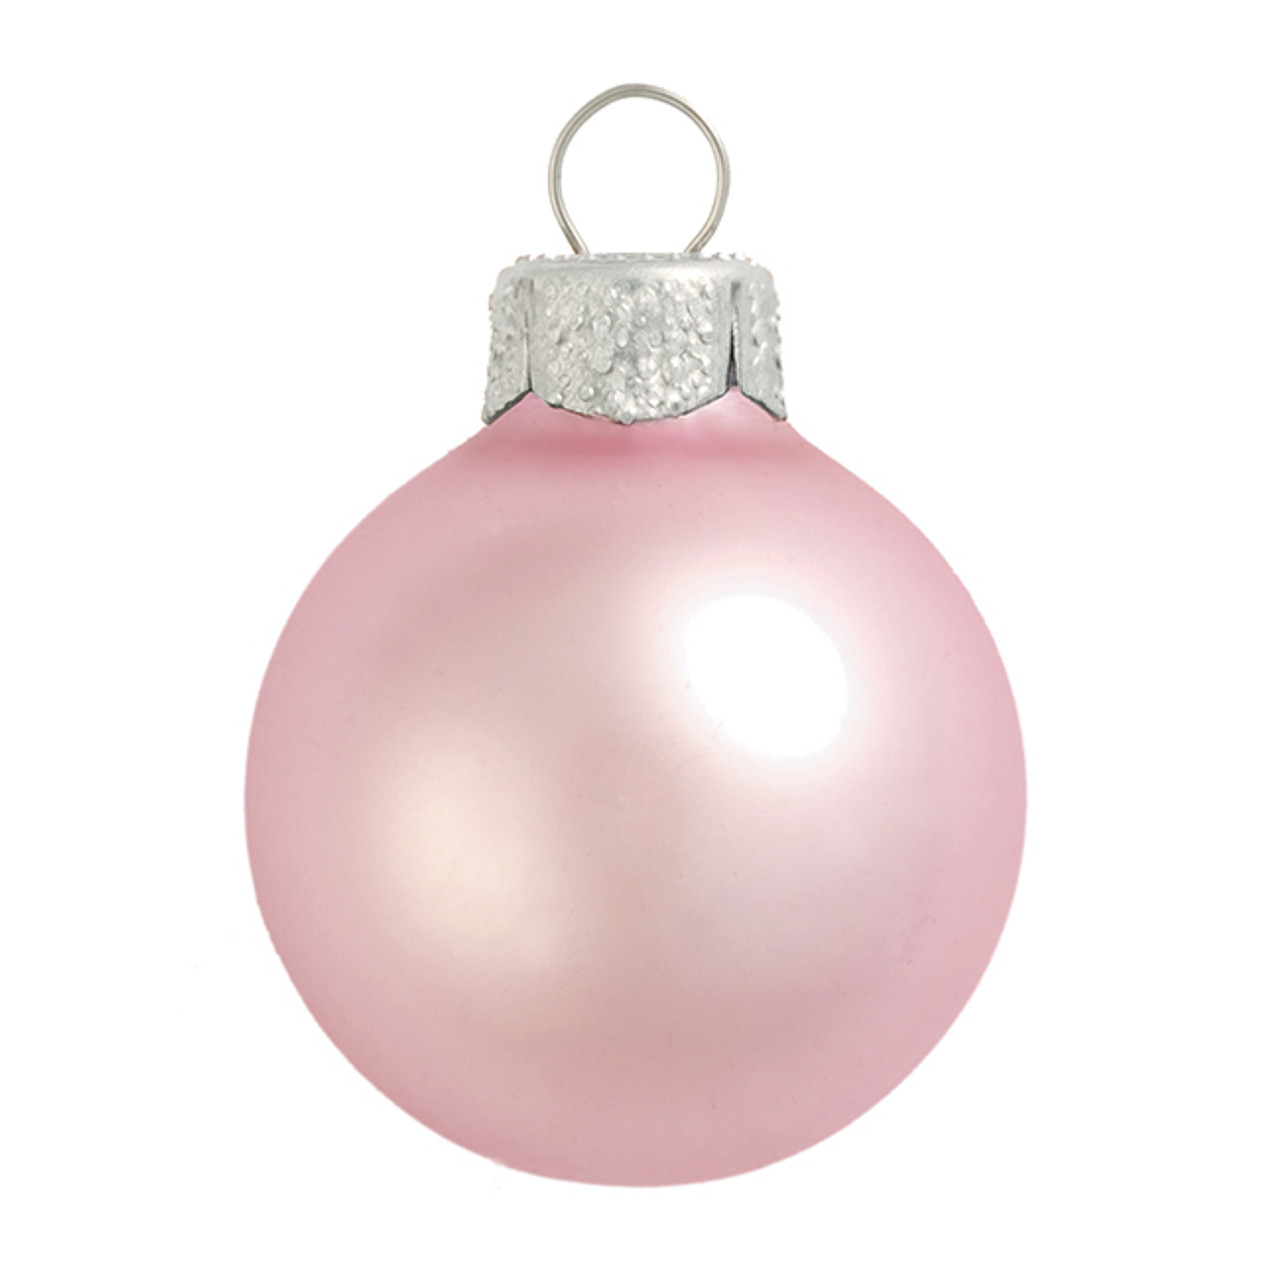 12ct Matte Baby Pink Glass Ball Christmas Ornaments 2.75 ...